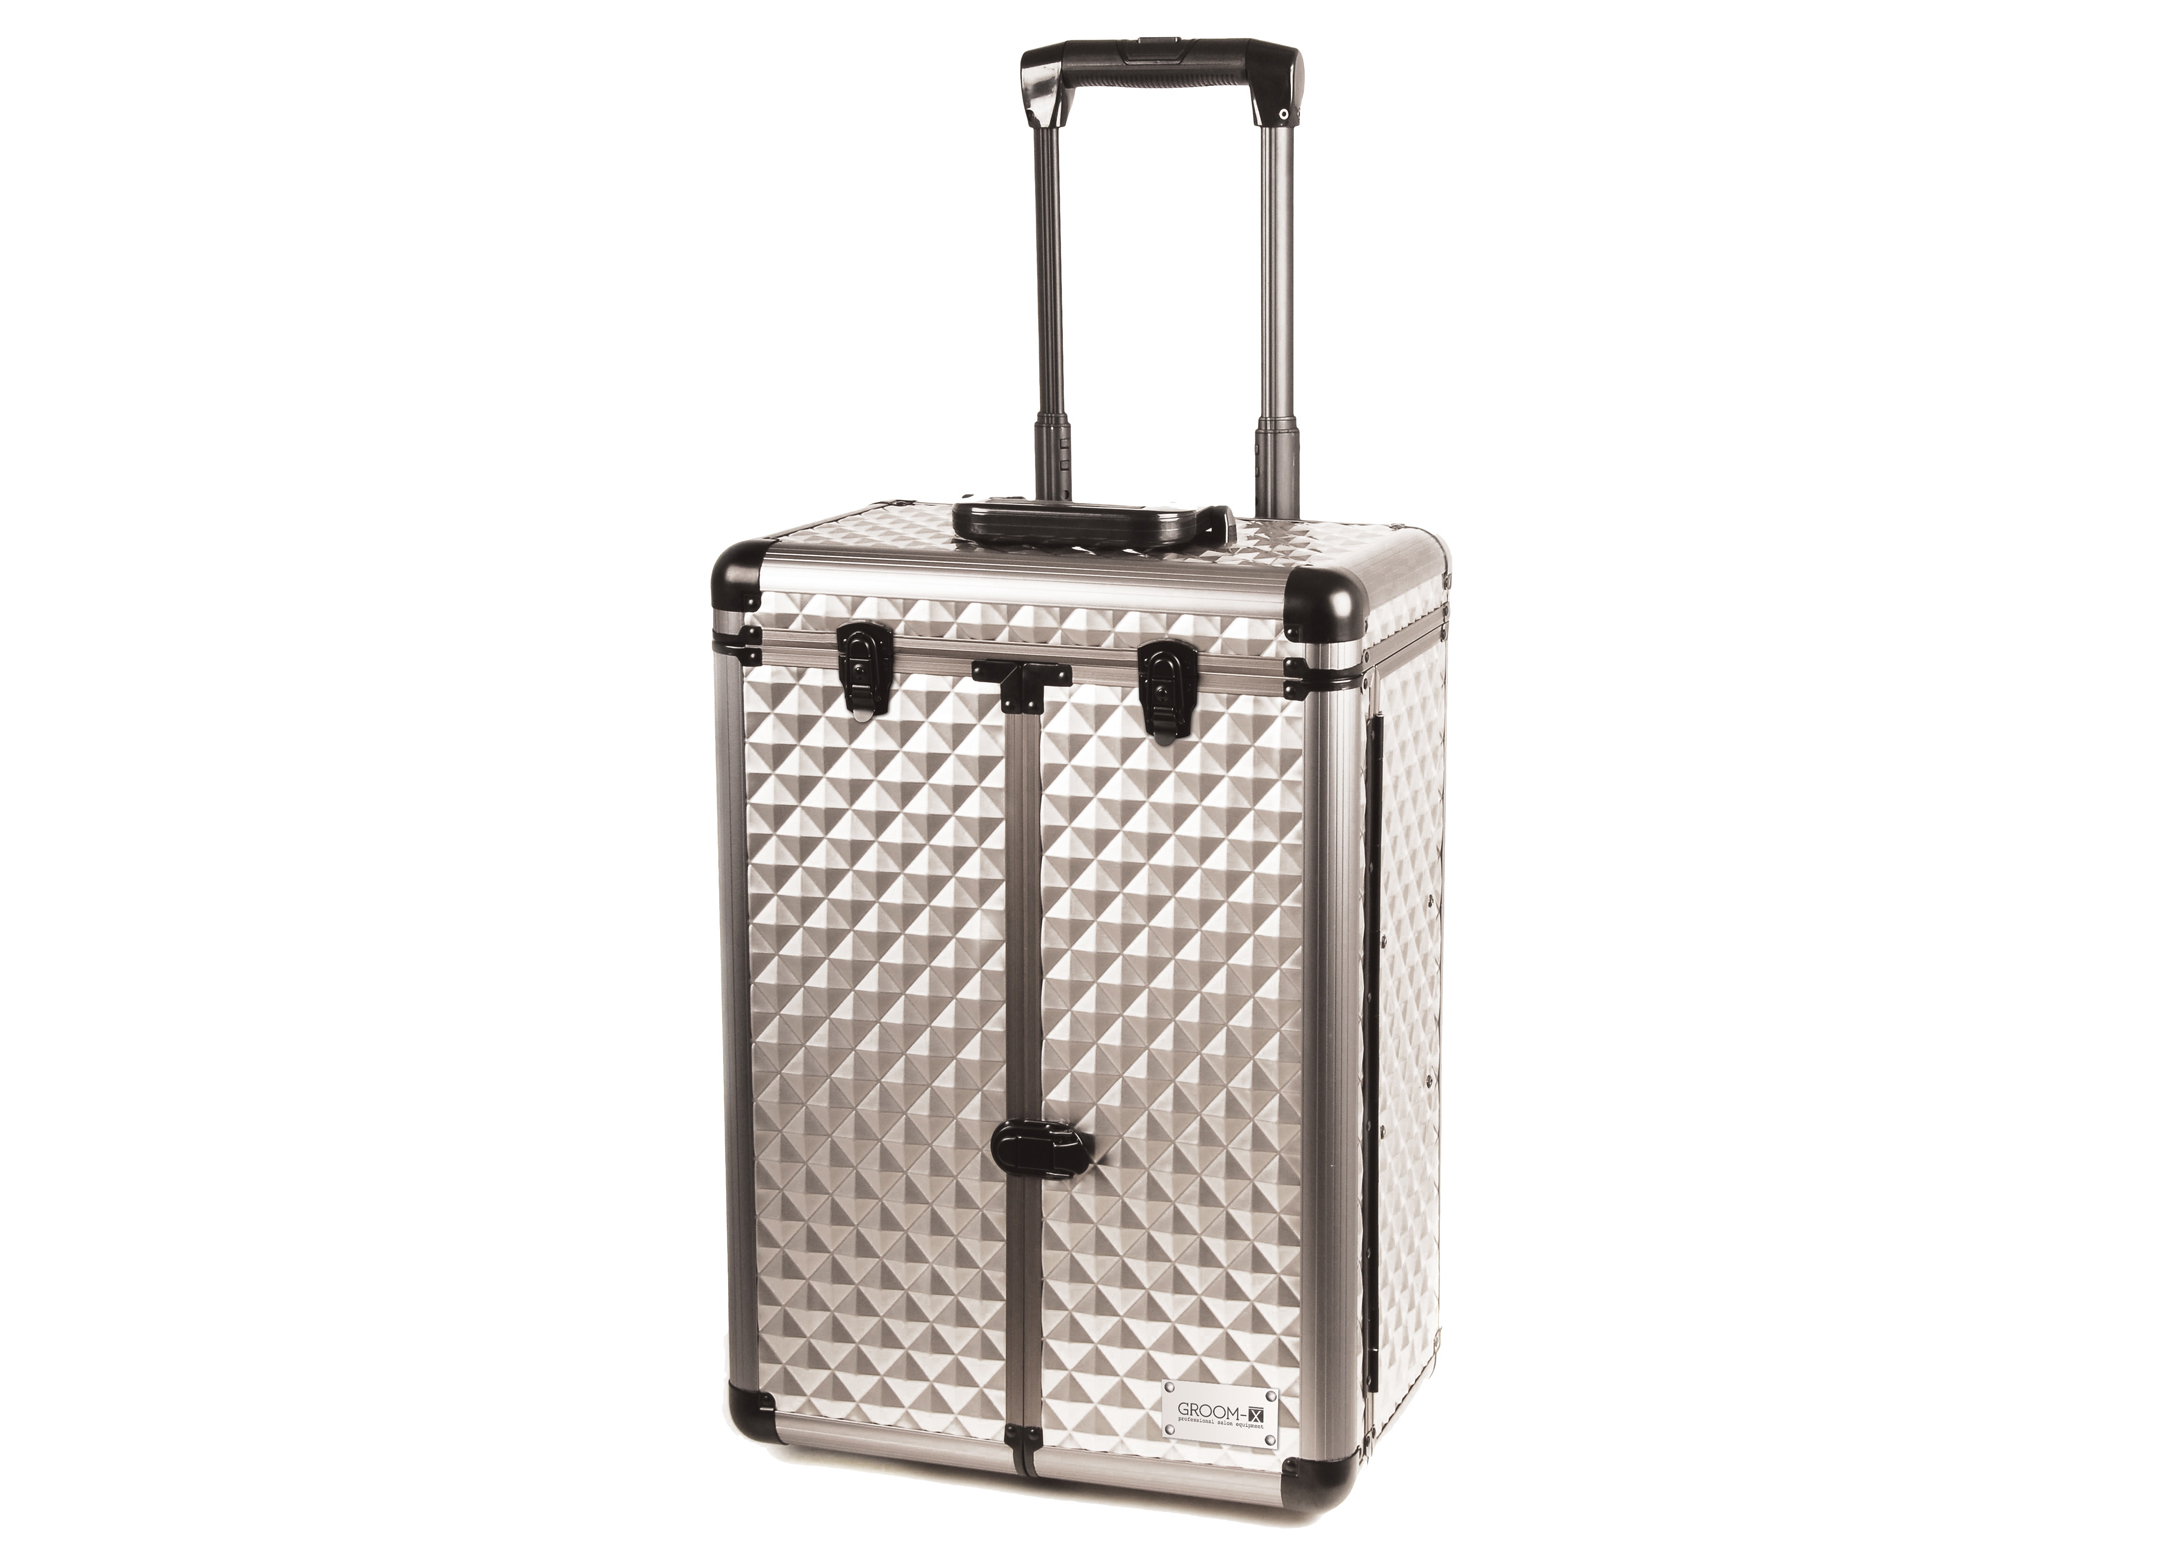 Groom-X Grooming Case Deluxe with 2 Wheels and Telescopic Handle with Diamond ABS Panel